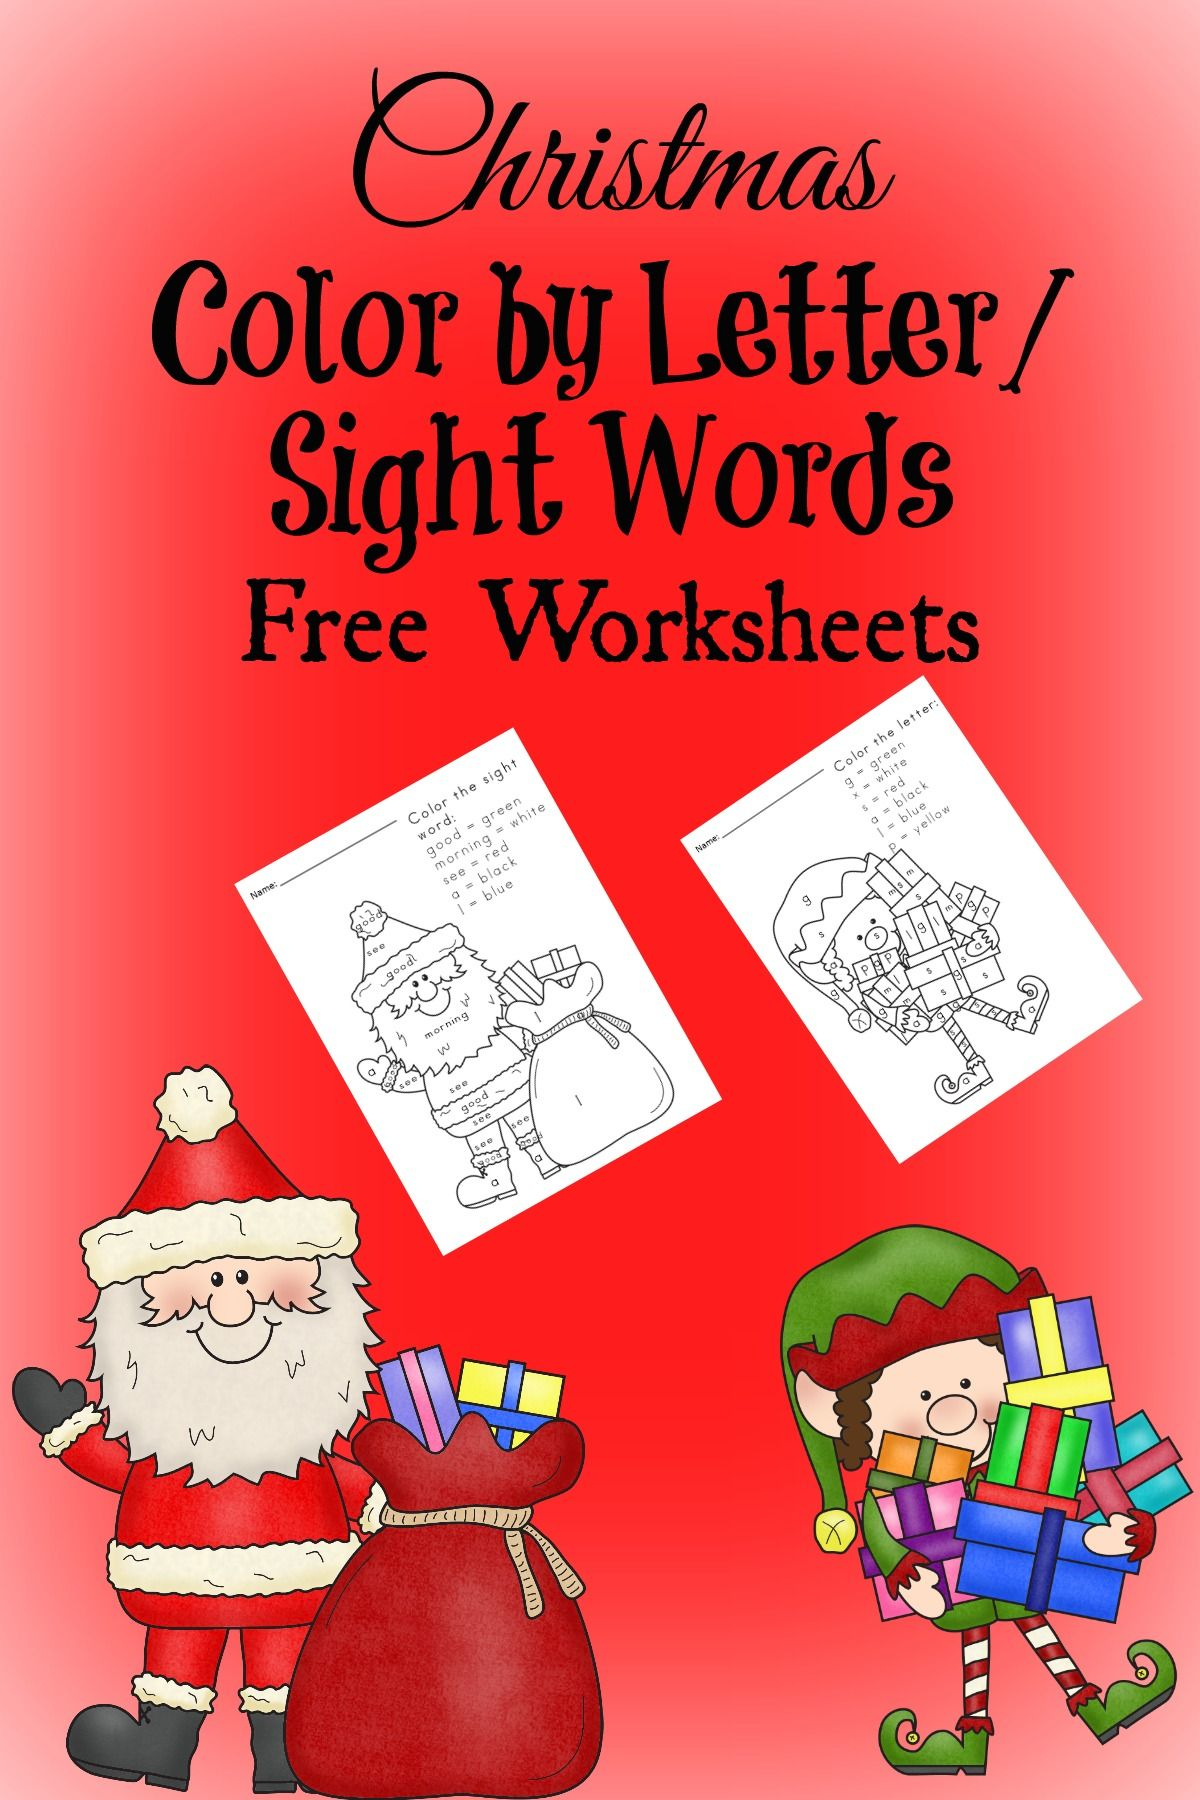 Christmas Worksheets For High School Students : Christmas word searches for high school students